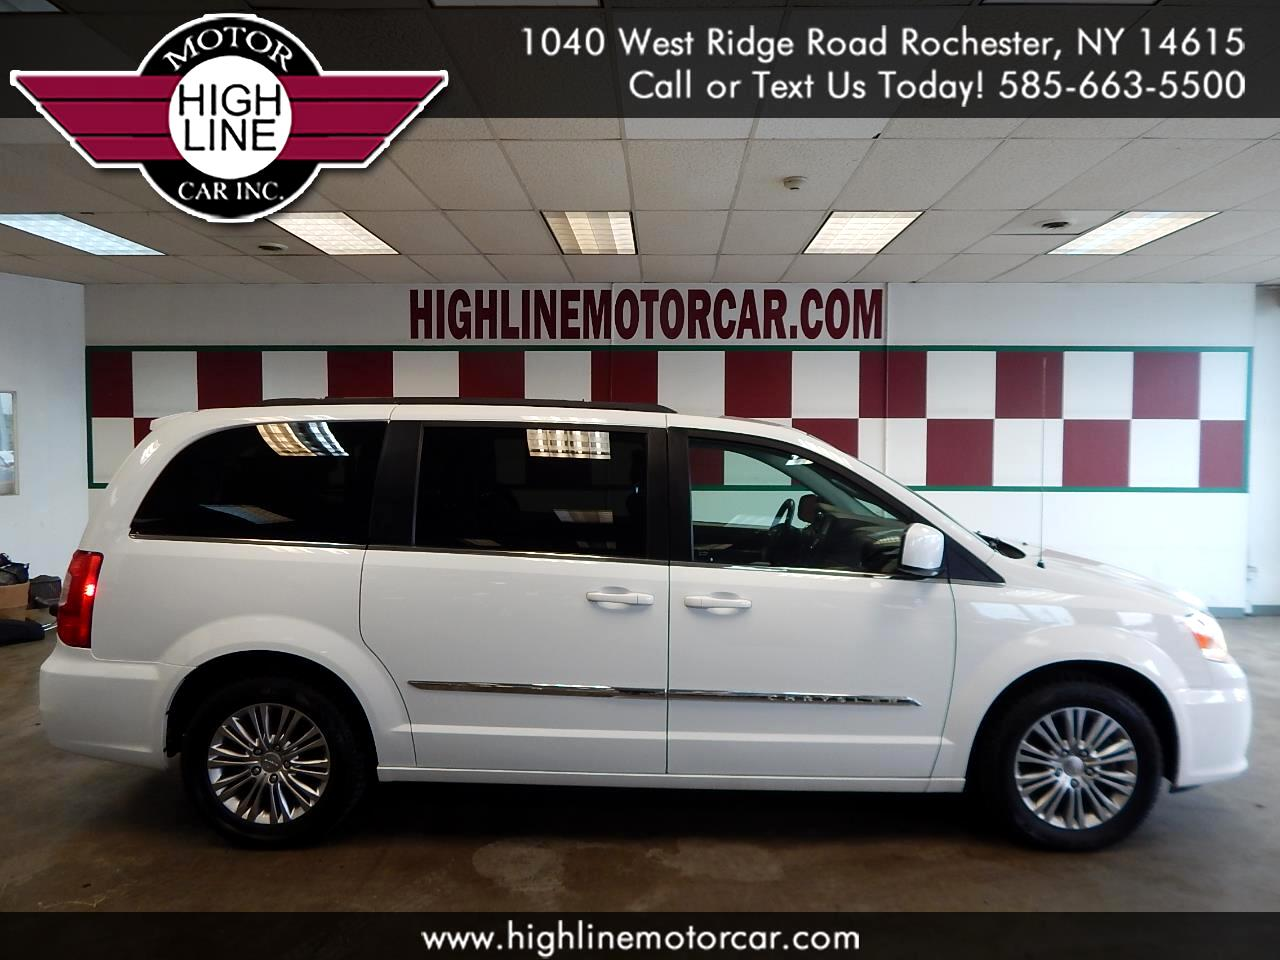 2016 Chrysler Town & Country 4dr Wgn Touring w/Leather